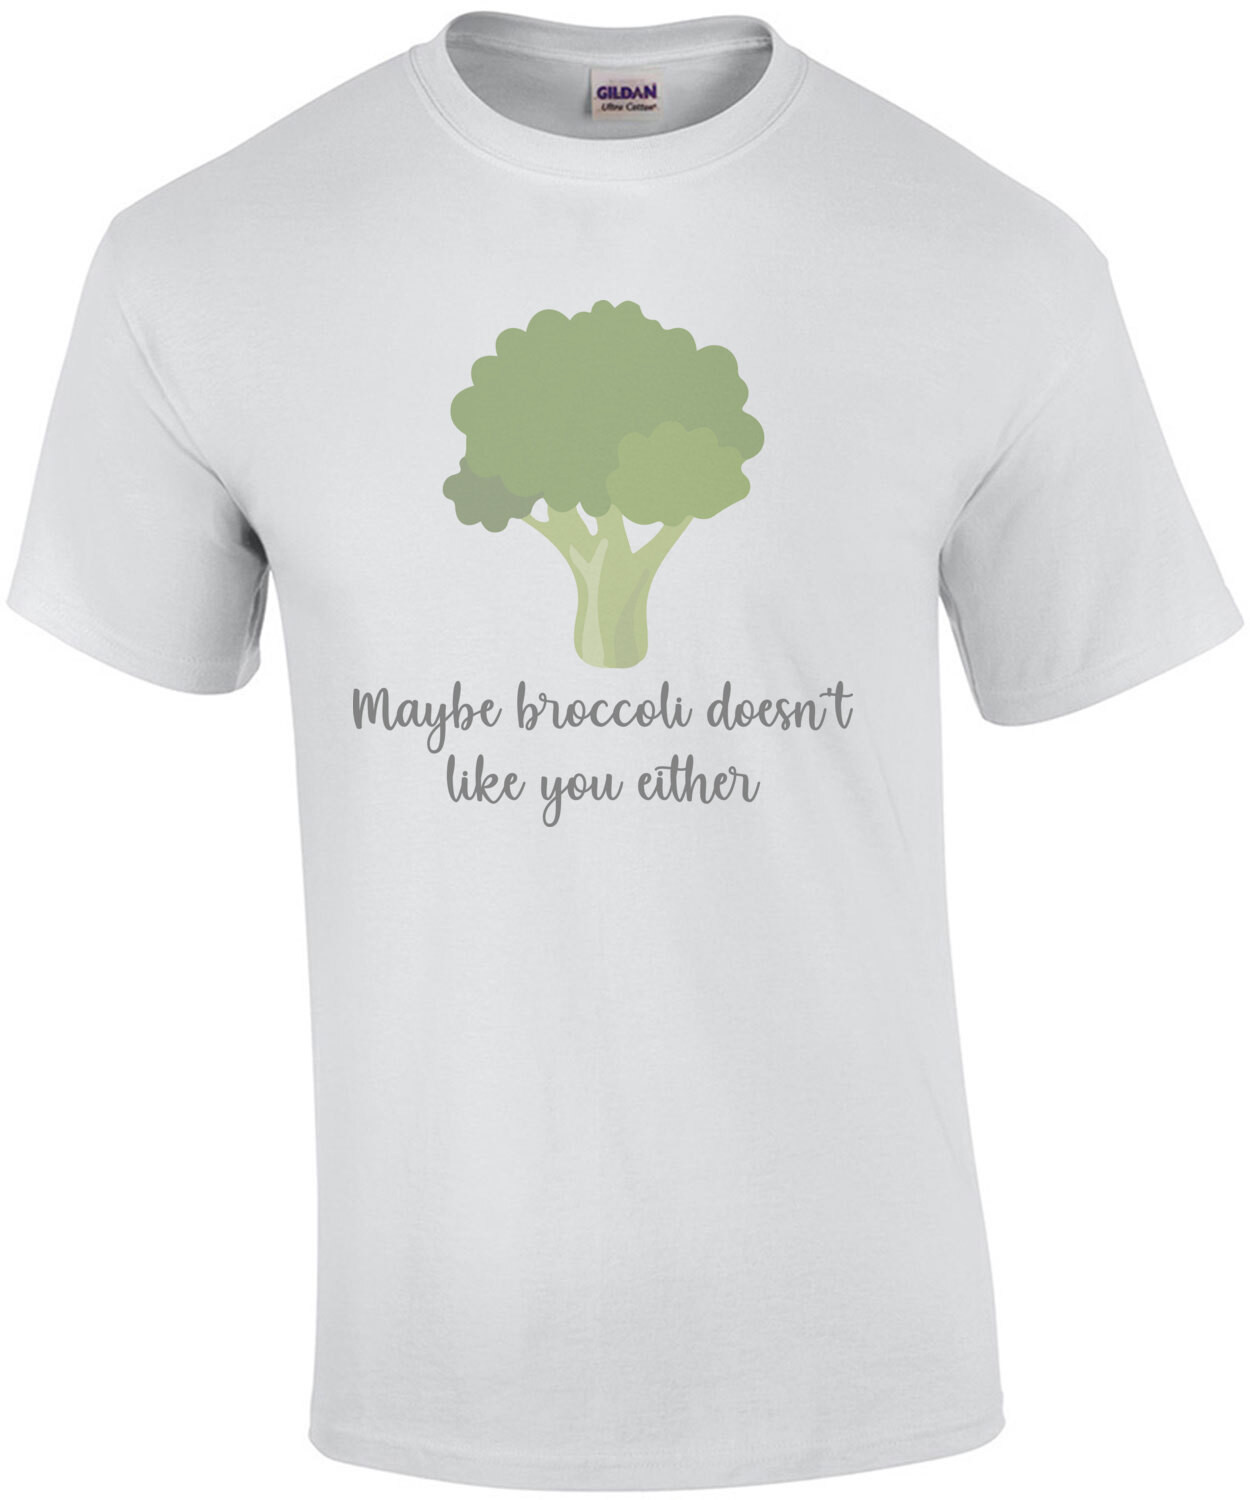 Maybe broccoli doesn't like you either - funny food t-shirt